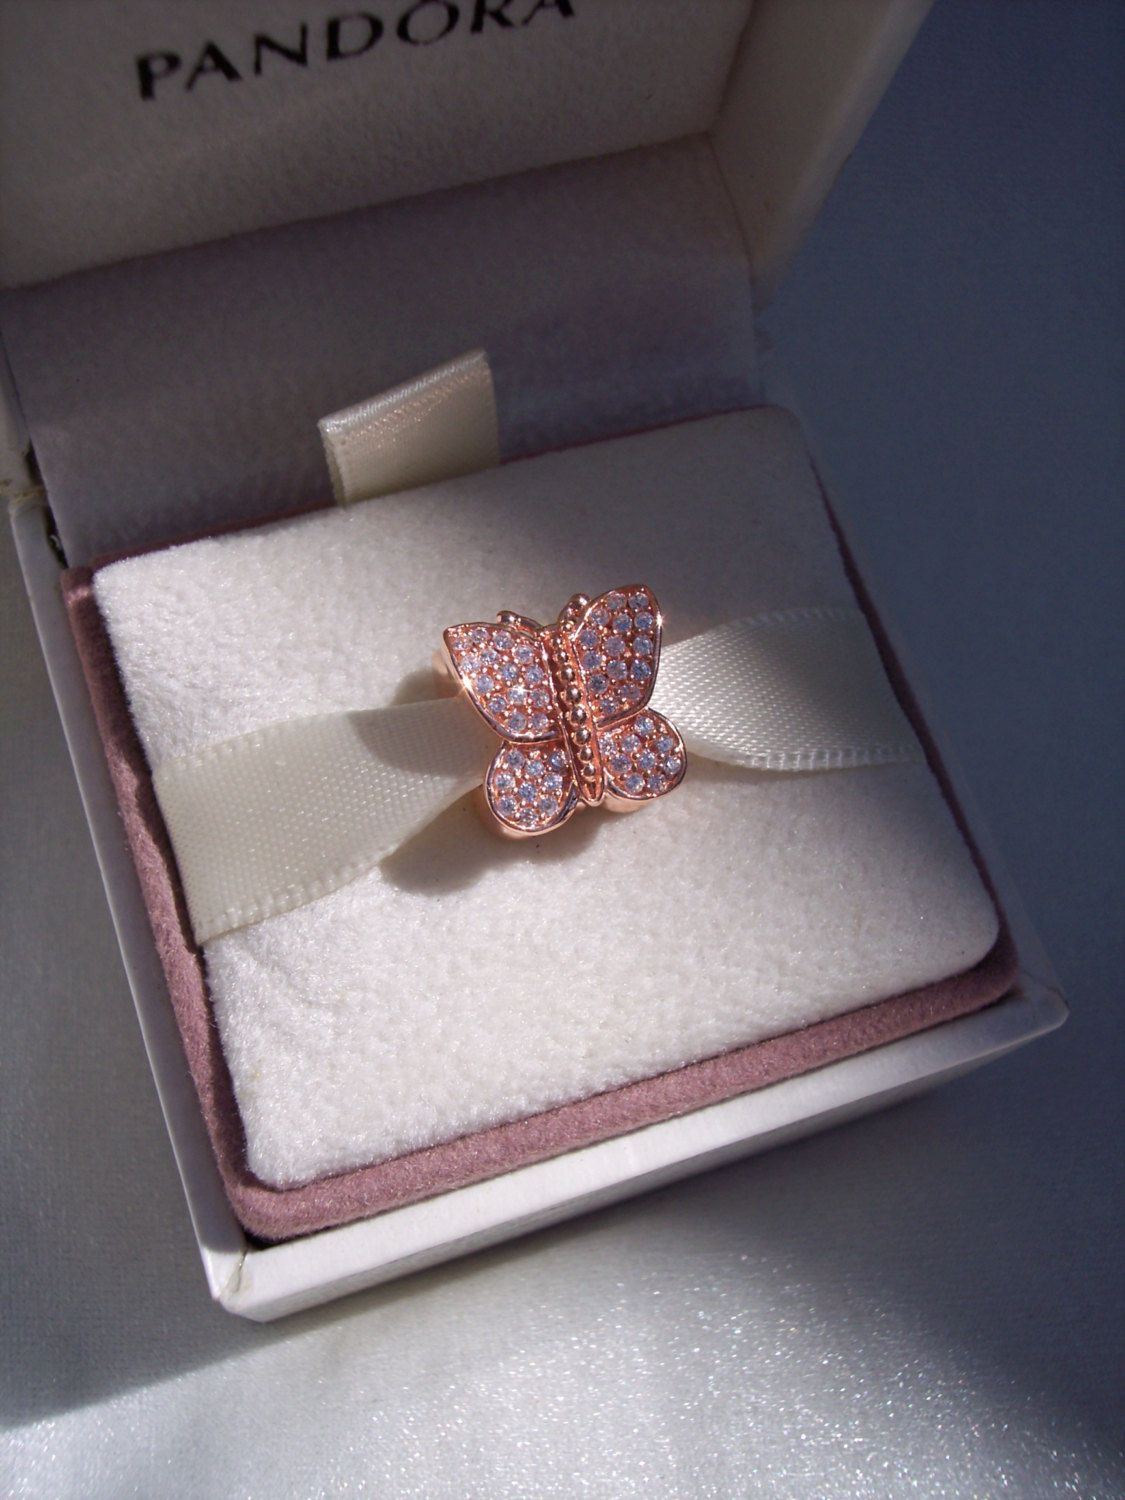 Pandora sparkling butterfly rose high fashion rose gold collection